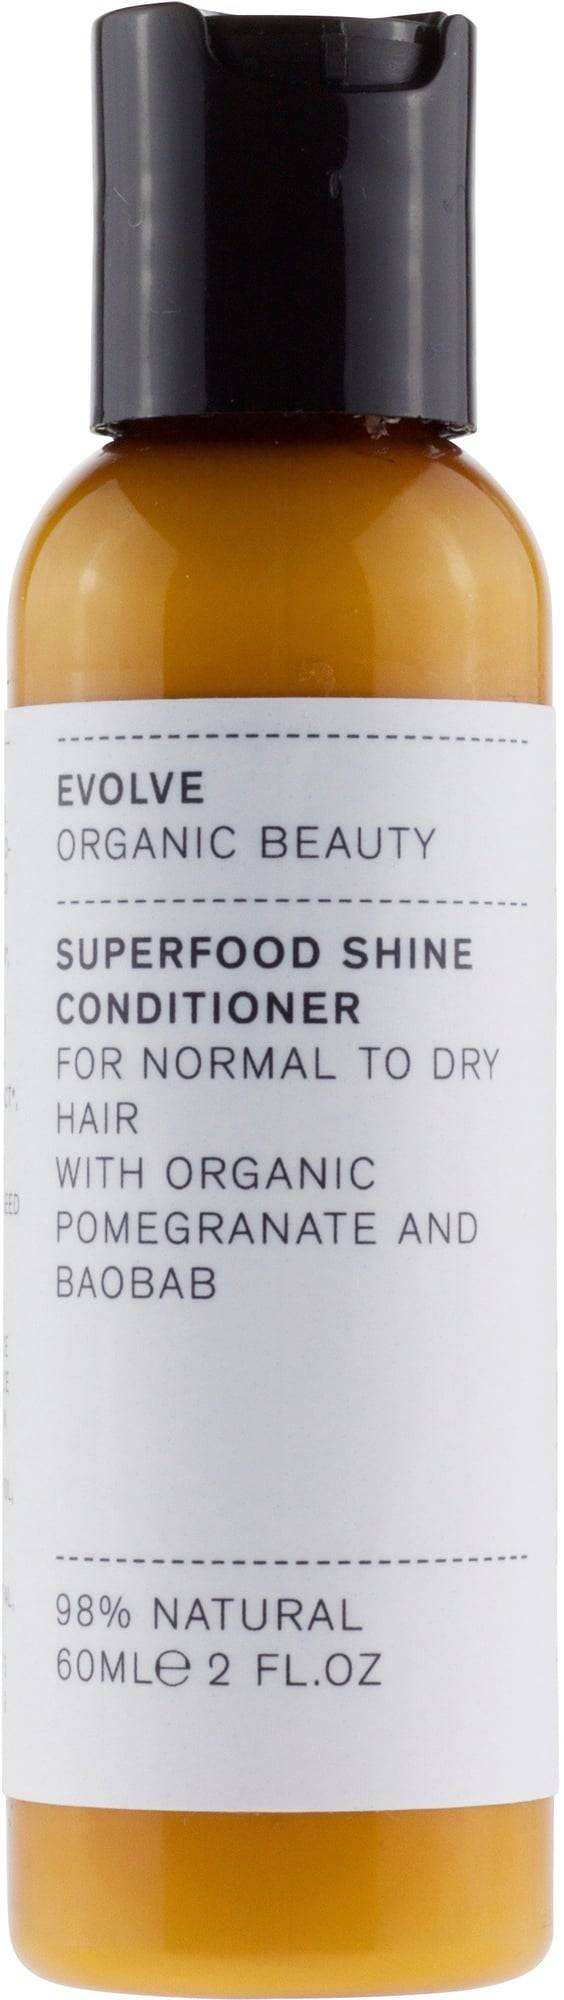 Evolve Organic Beauty Superfood Shine hiustenhoitoaine - 60 ml